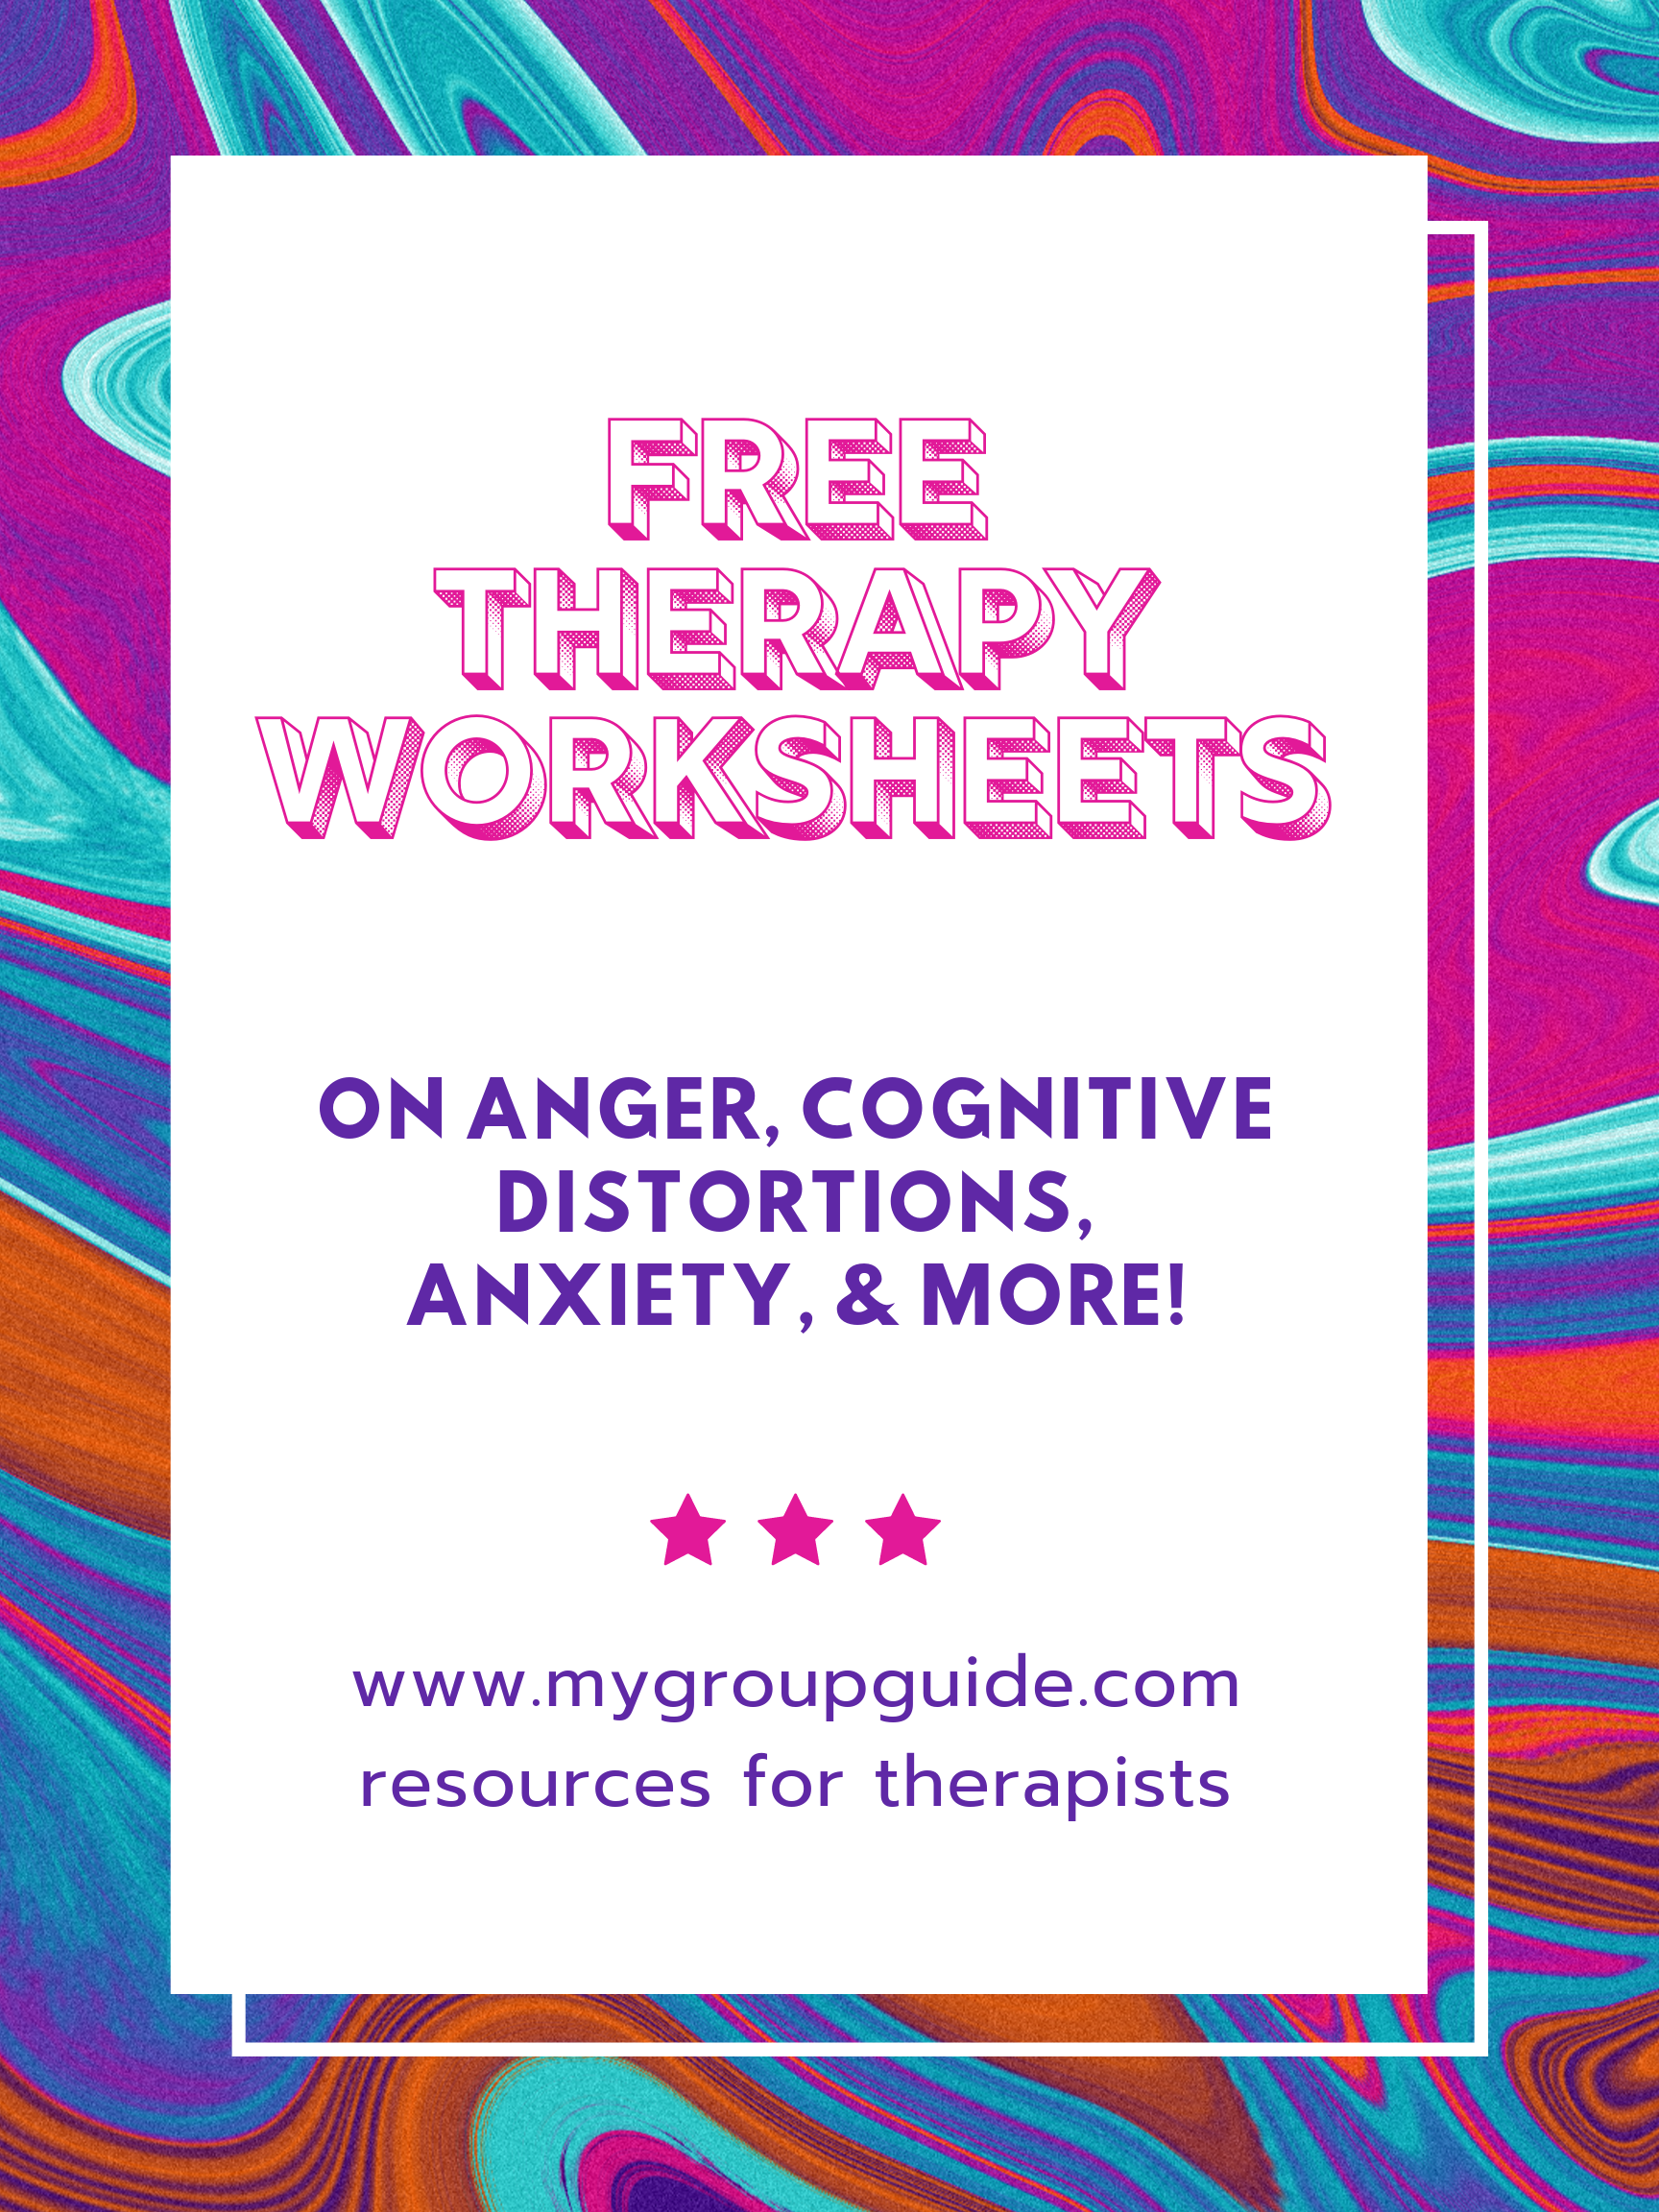 My Group Guide Free Therapy Worksheets